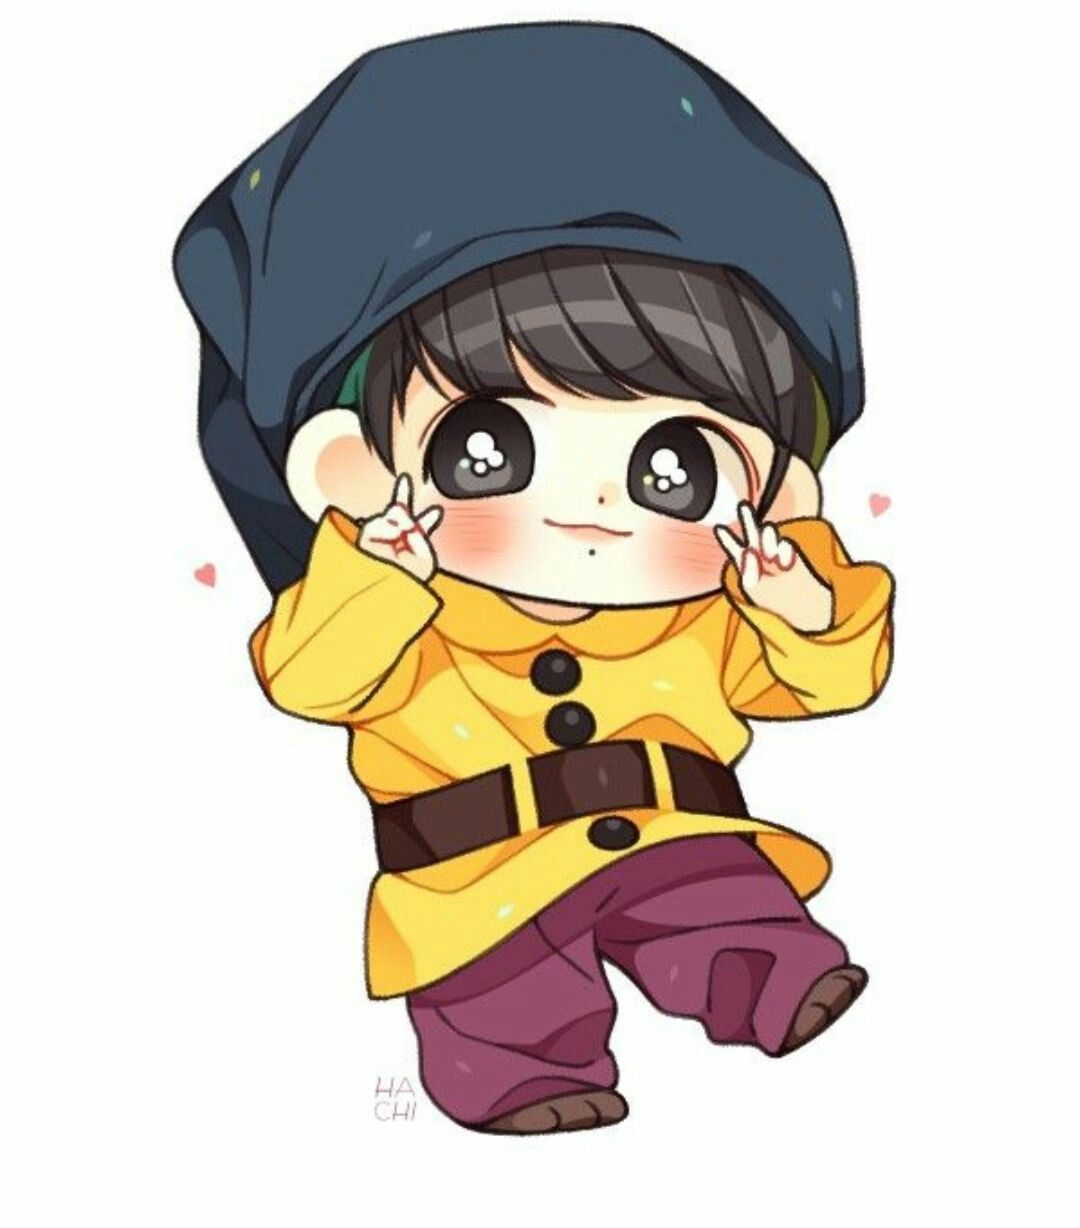 Pin By Eloシ On Fanarts Bts Chibi Chibi Cute Drawings